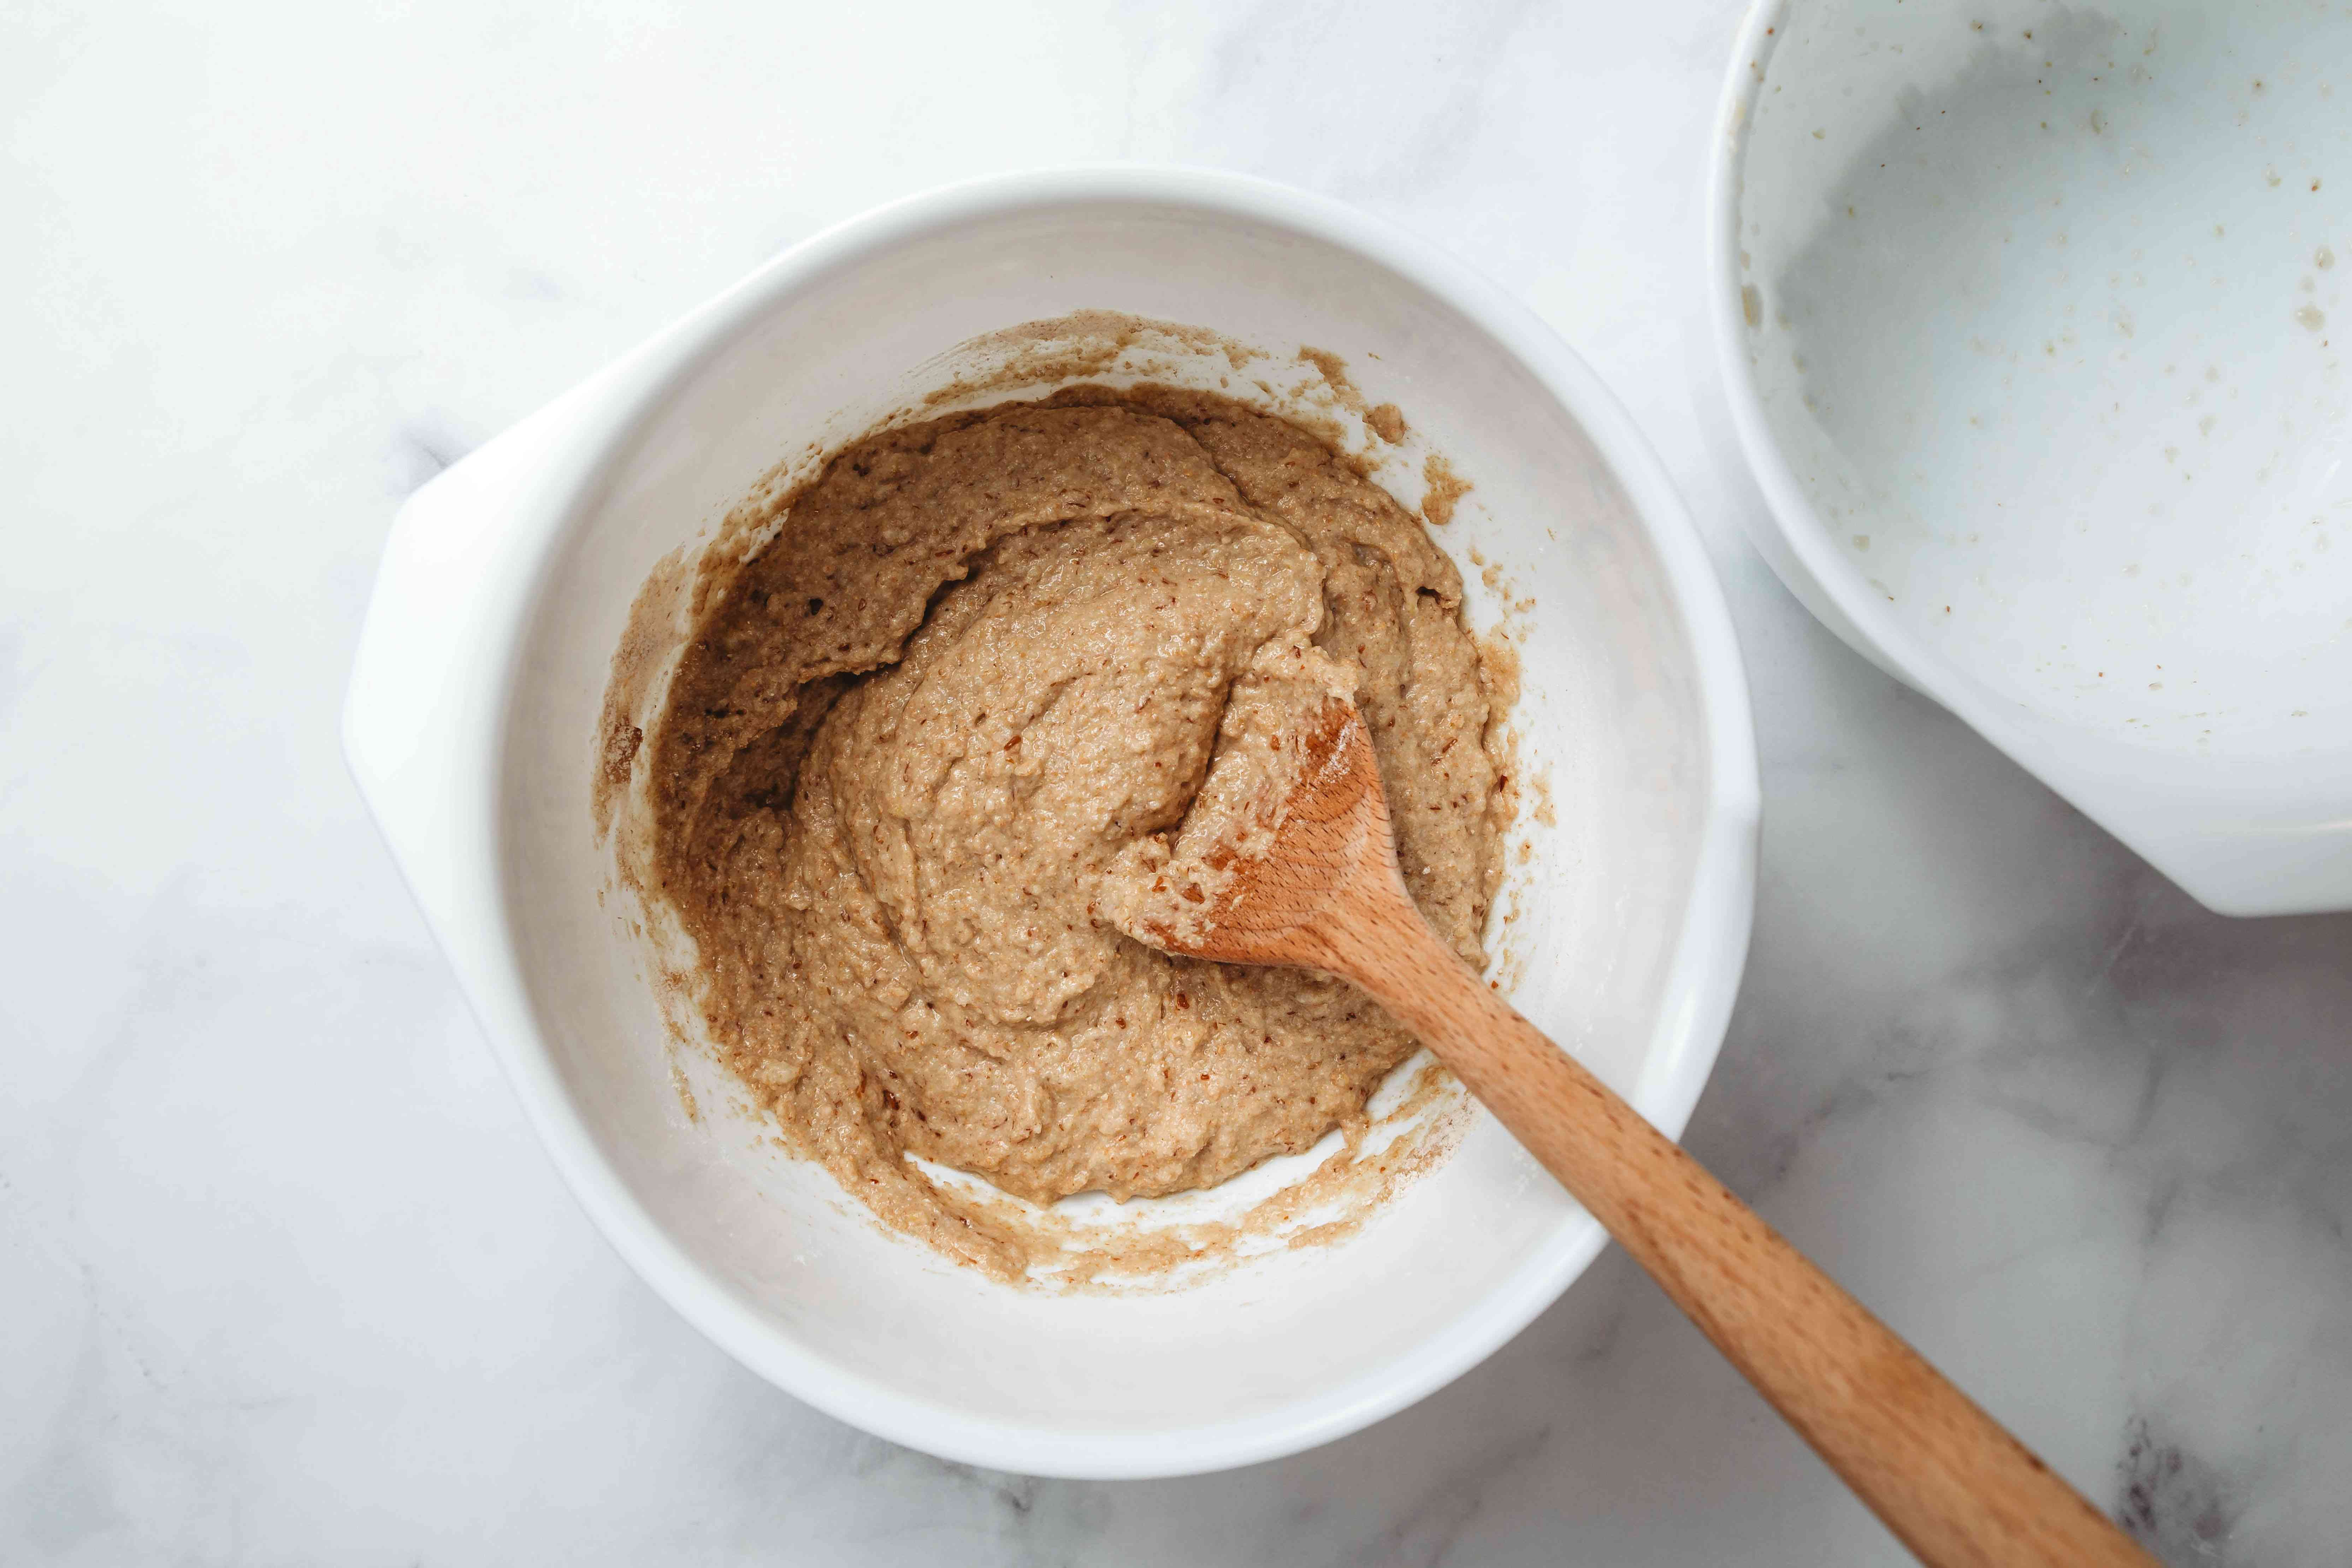 Add the applesauce mixture to the flour mixture